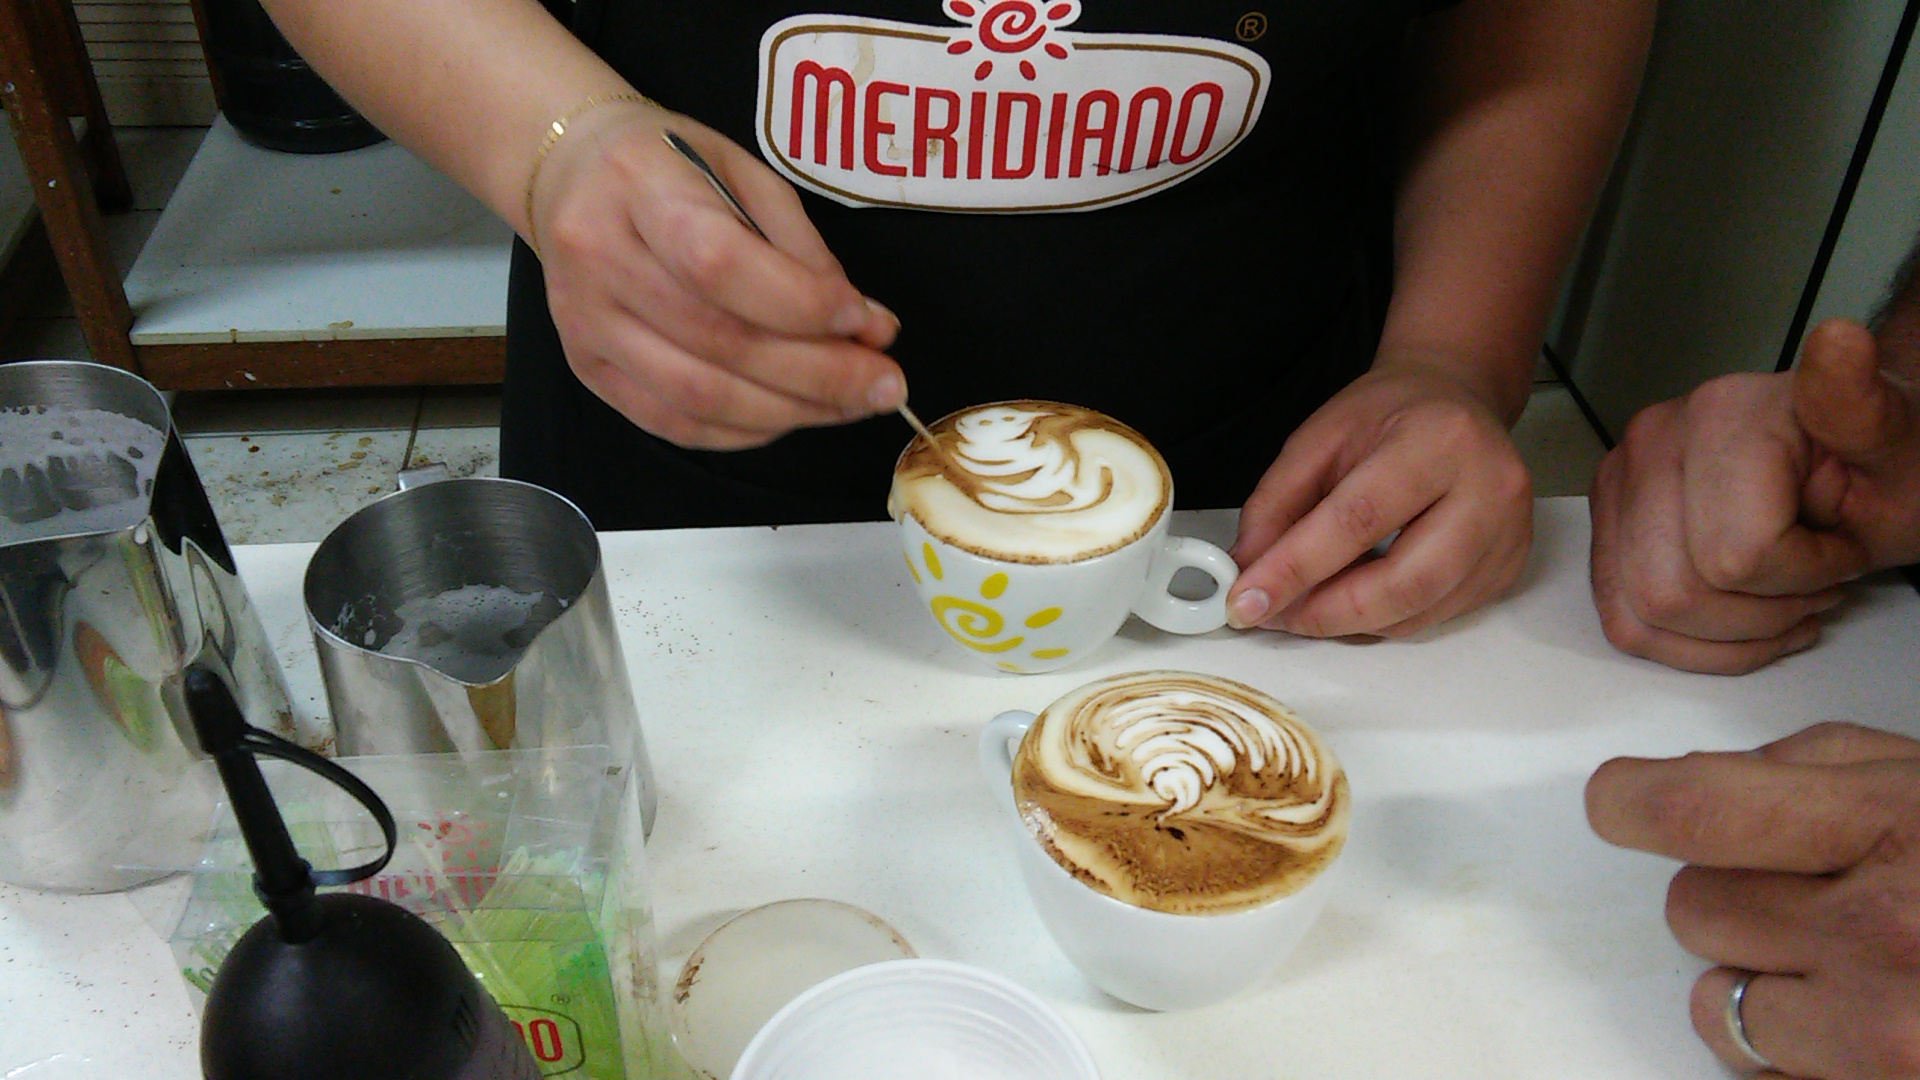 Meridiano incrementando a arte do café com Latte Art.